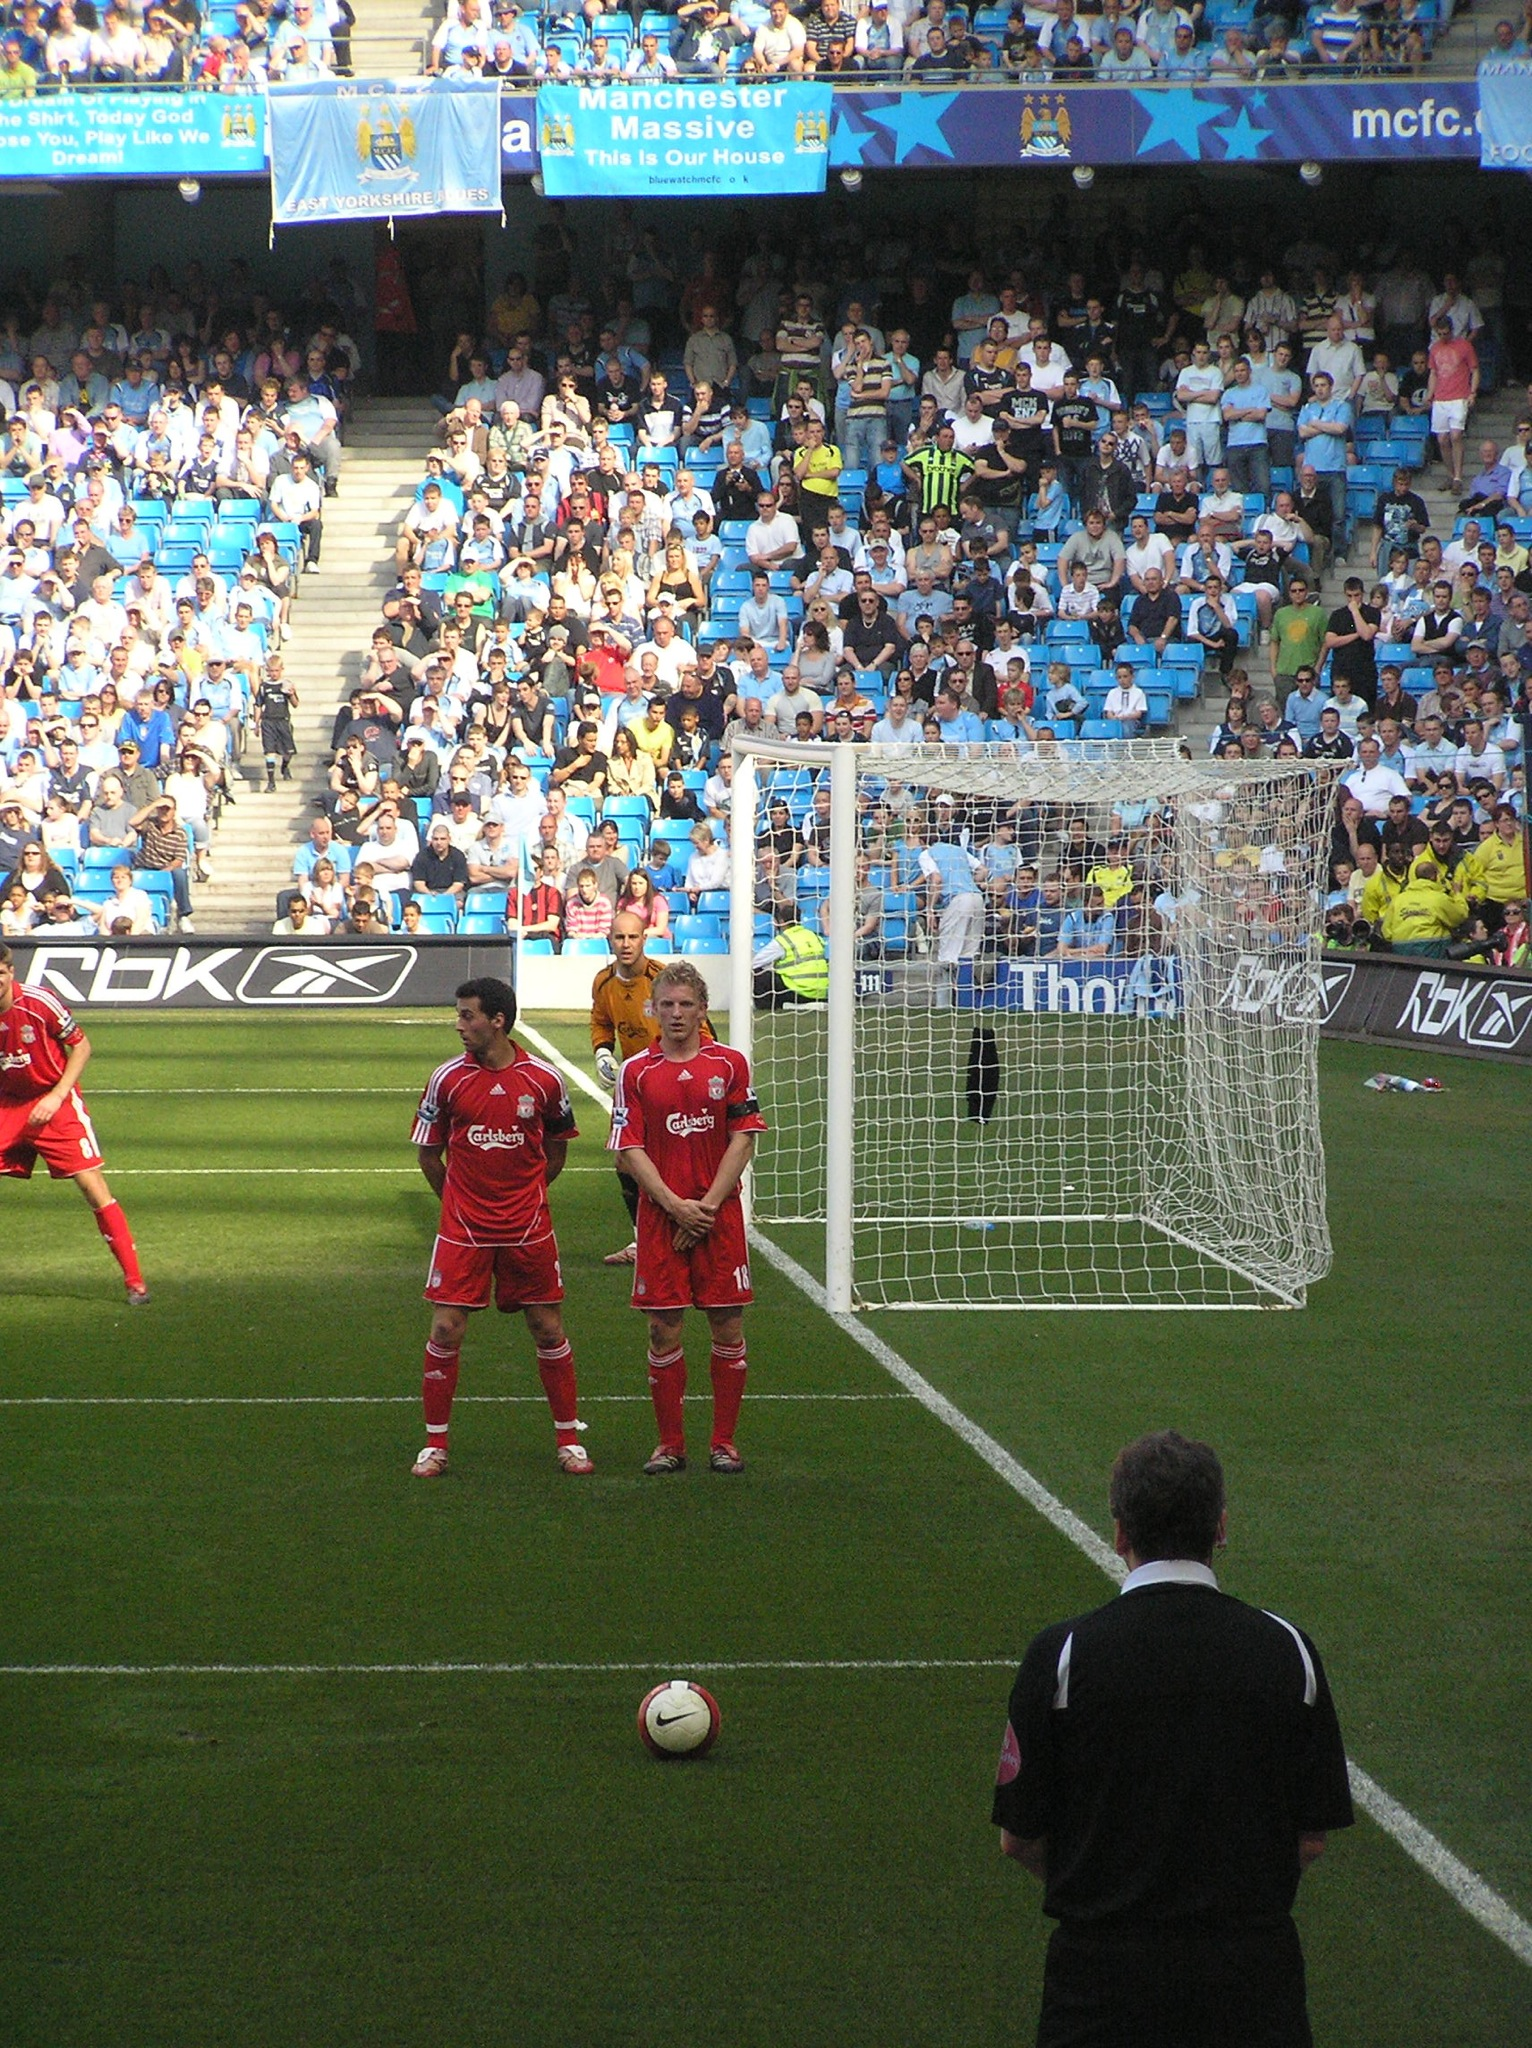 File:Liverpool vs Man City free kick.jpg - Wikipedia, the free ...